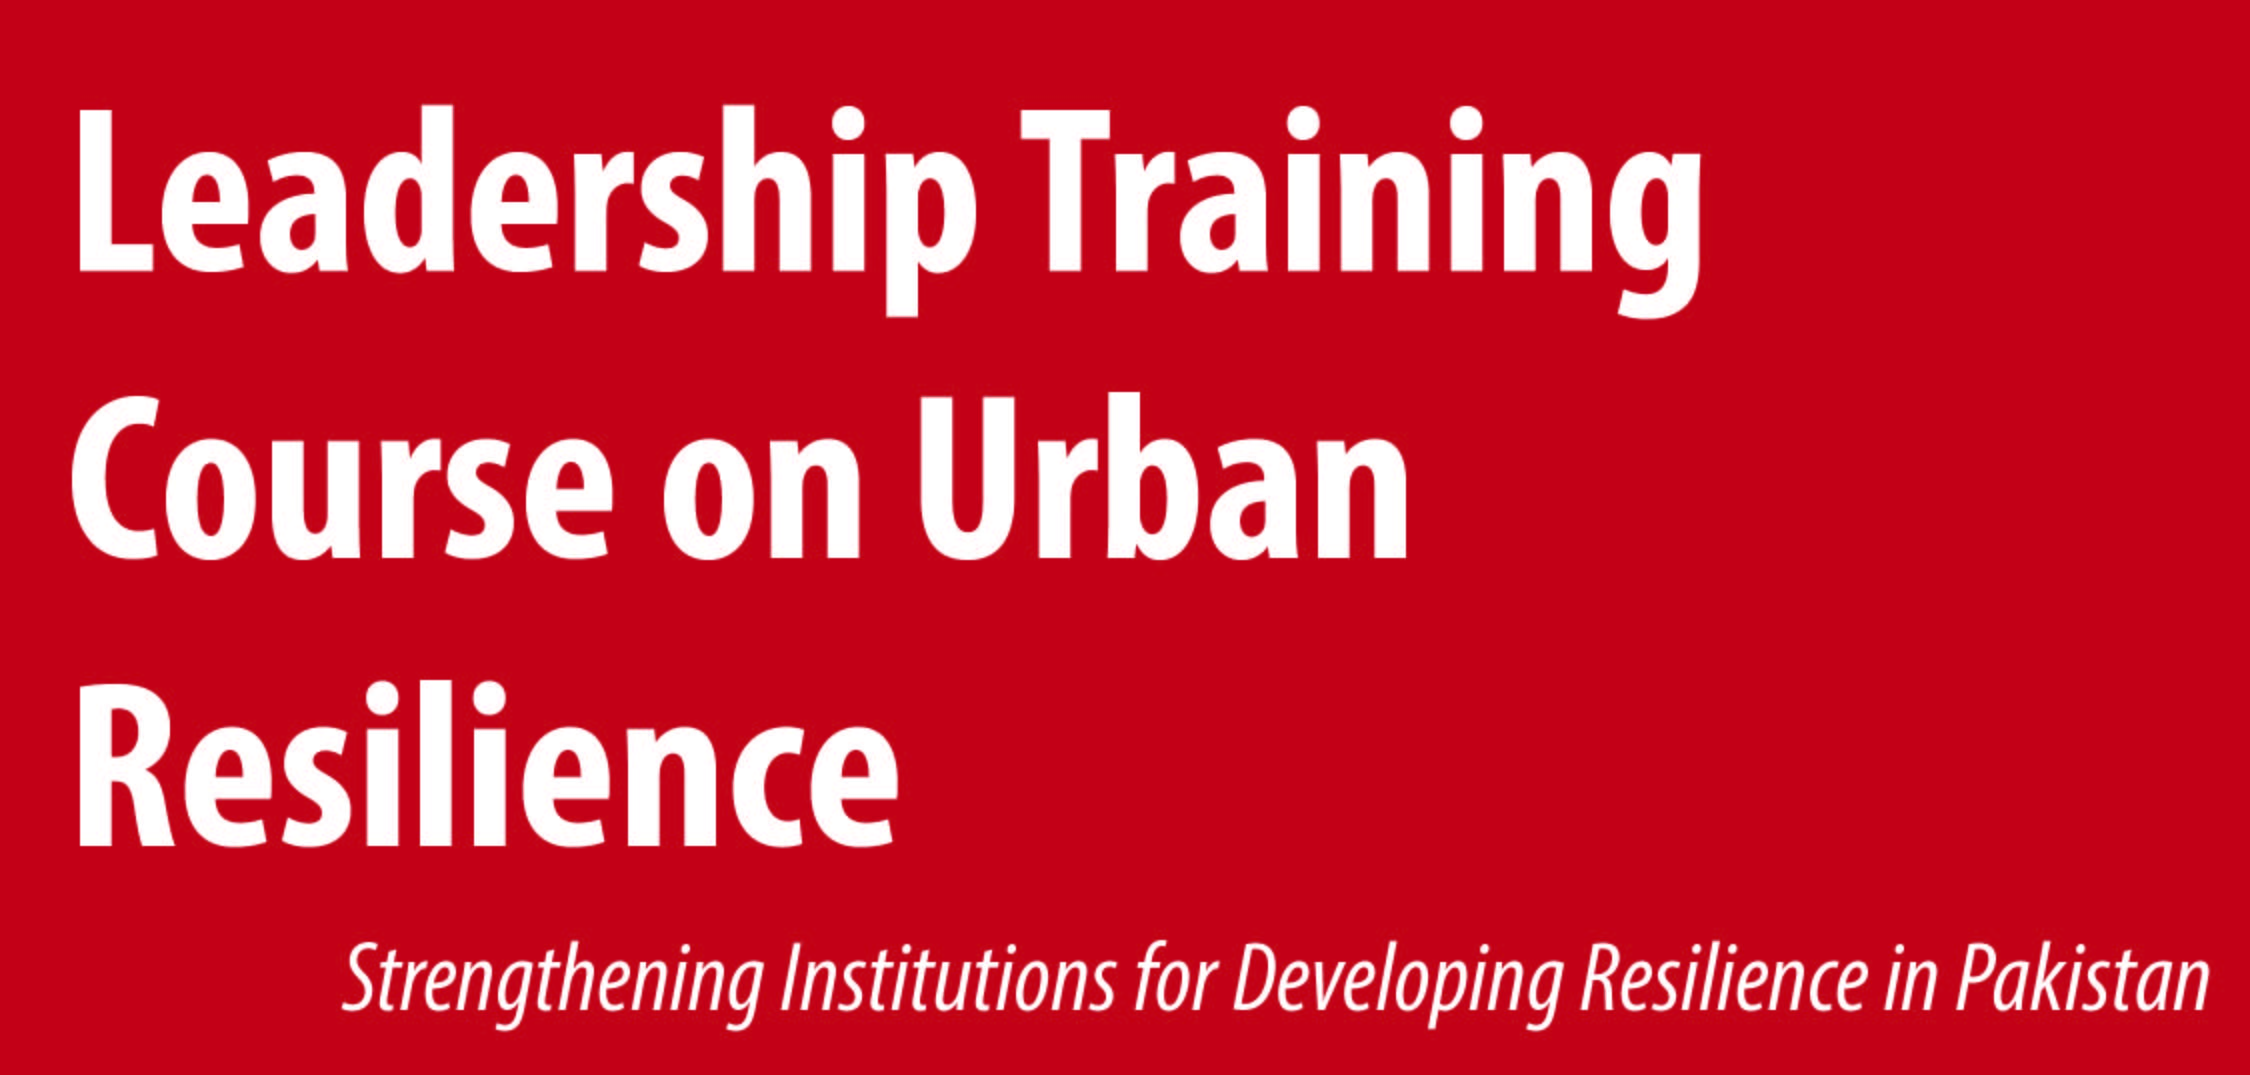 Leadership Training Course on Urban Resilience WBADPC05